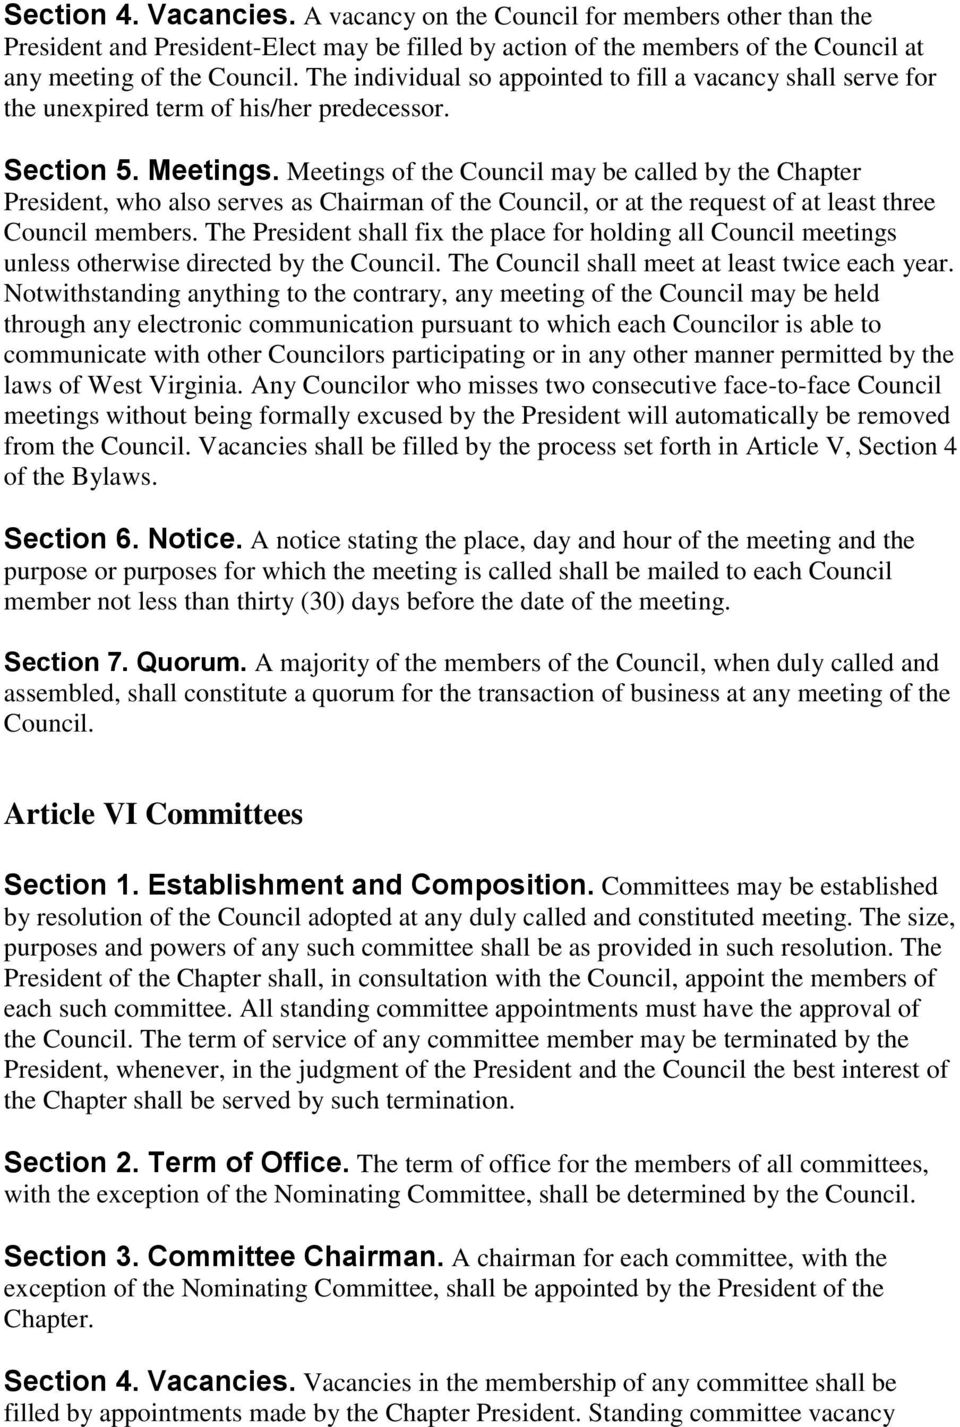 Meetings of the Council may be called by the Chapter President, who also serves as Chairman of the Council, or at the request of at least three Council members.